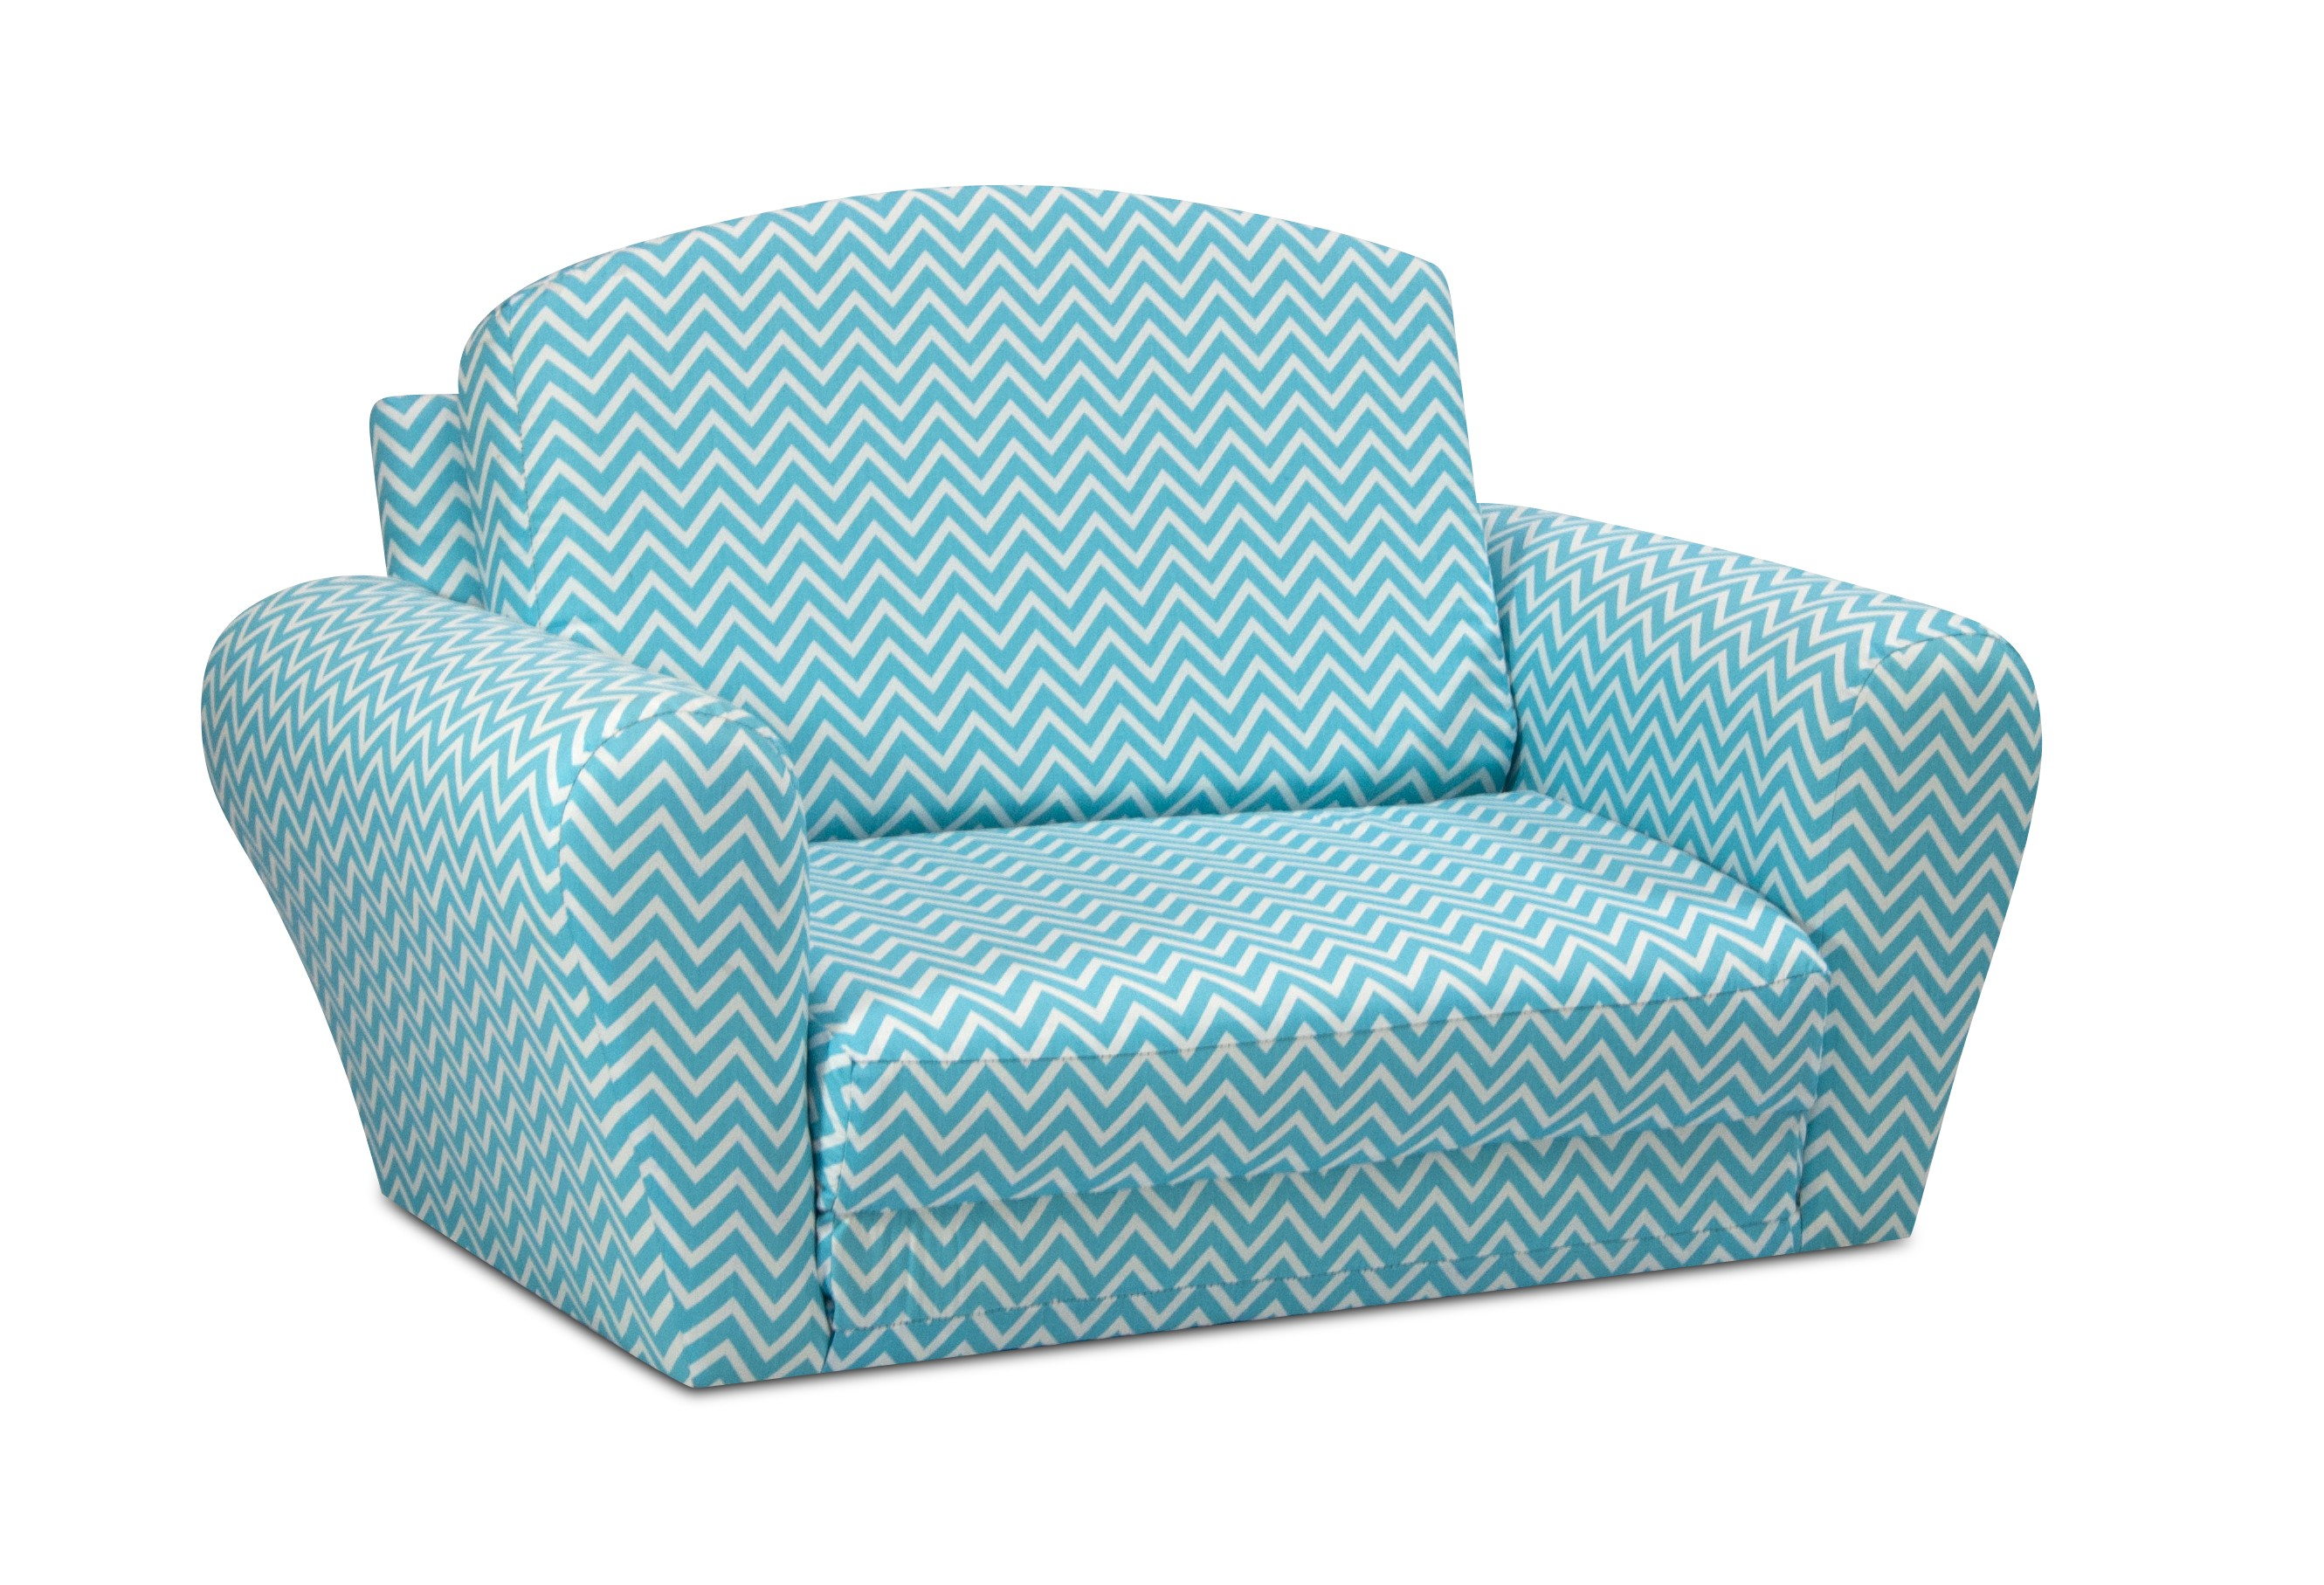 Cosmo - Girly Blue Sleepover/Sofa